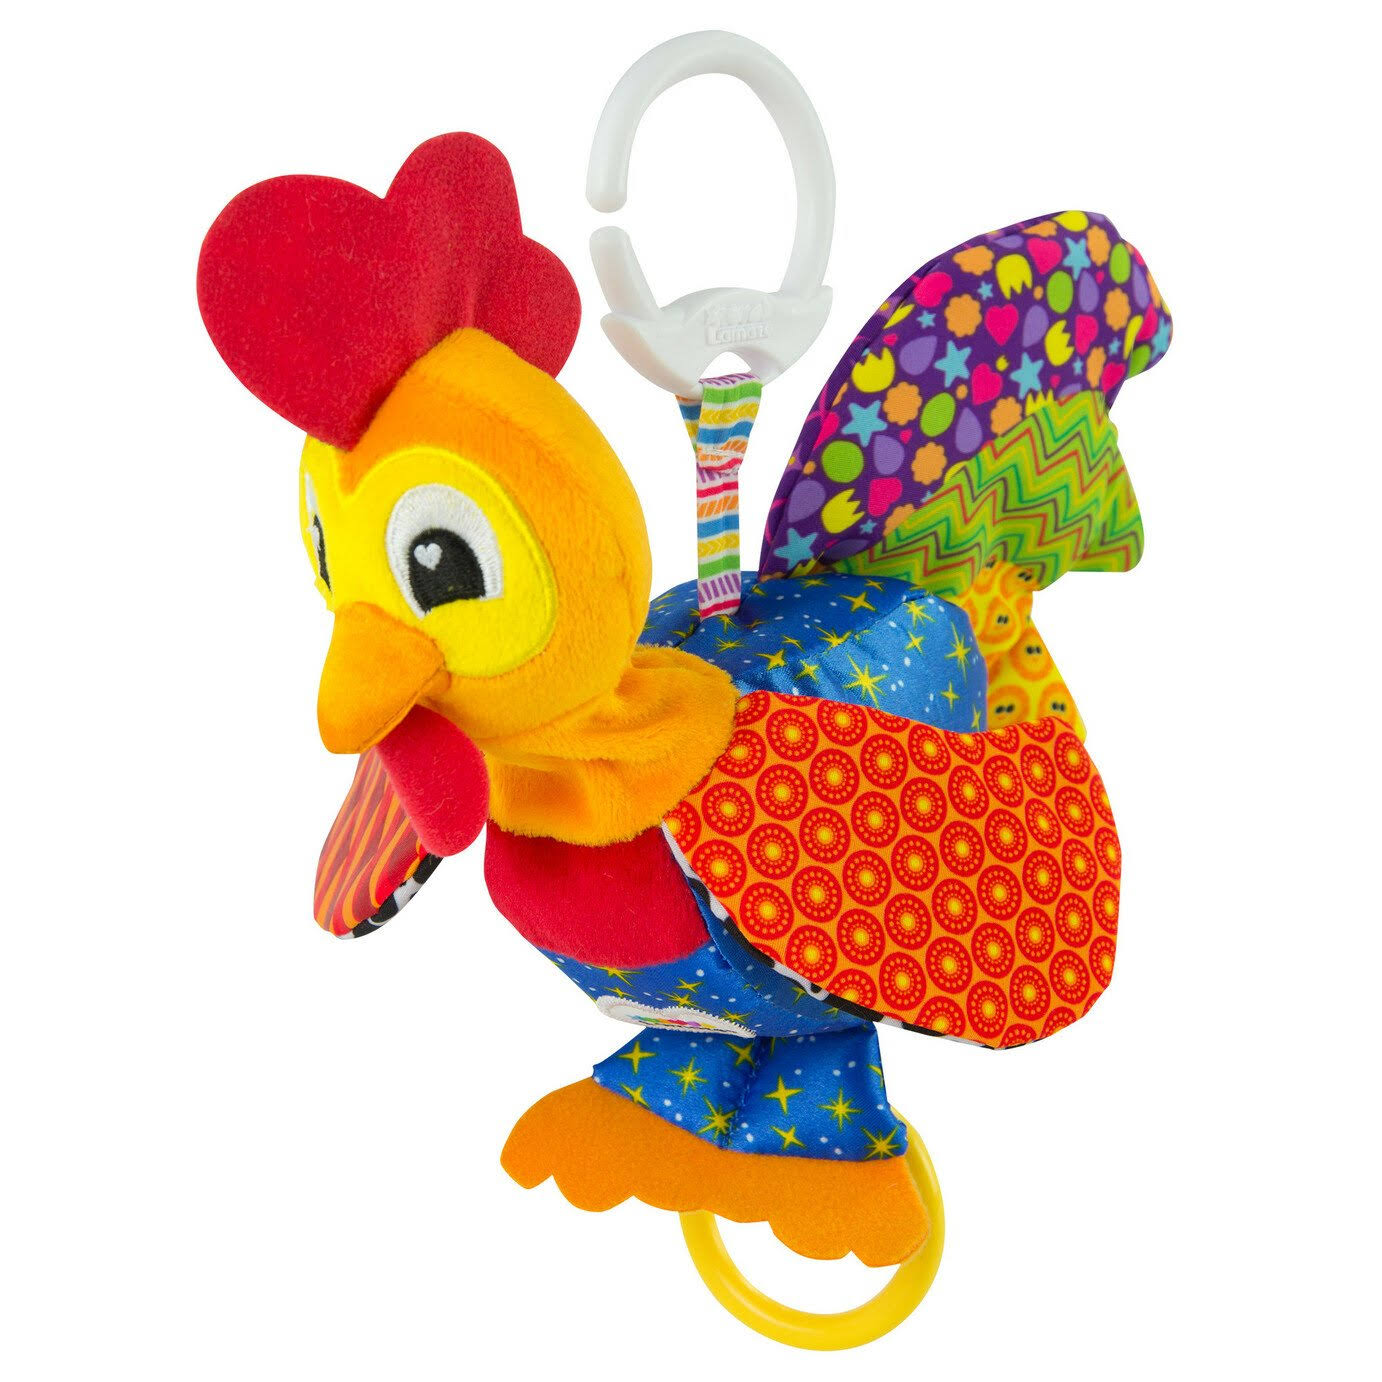 Lamaze Barnyard Bob the Rooster Baby Toy